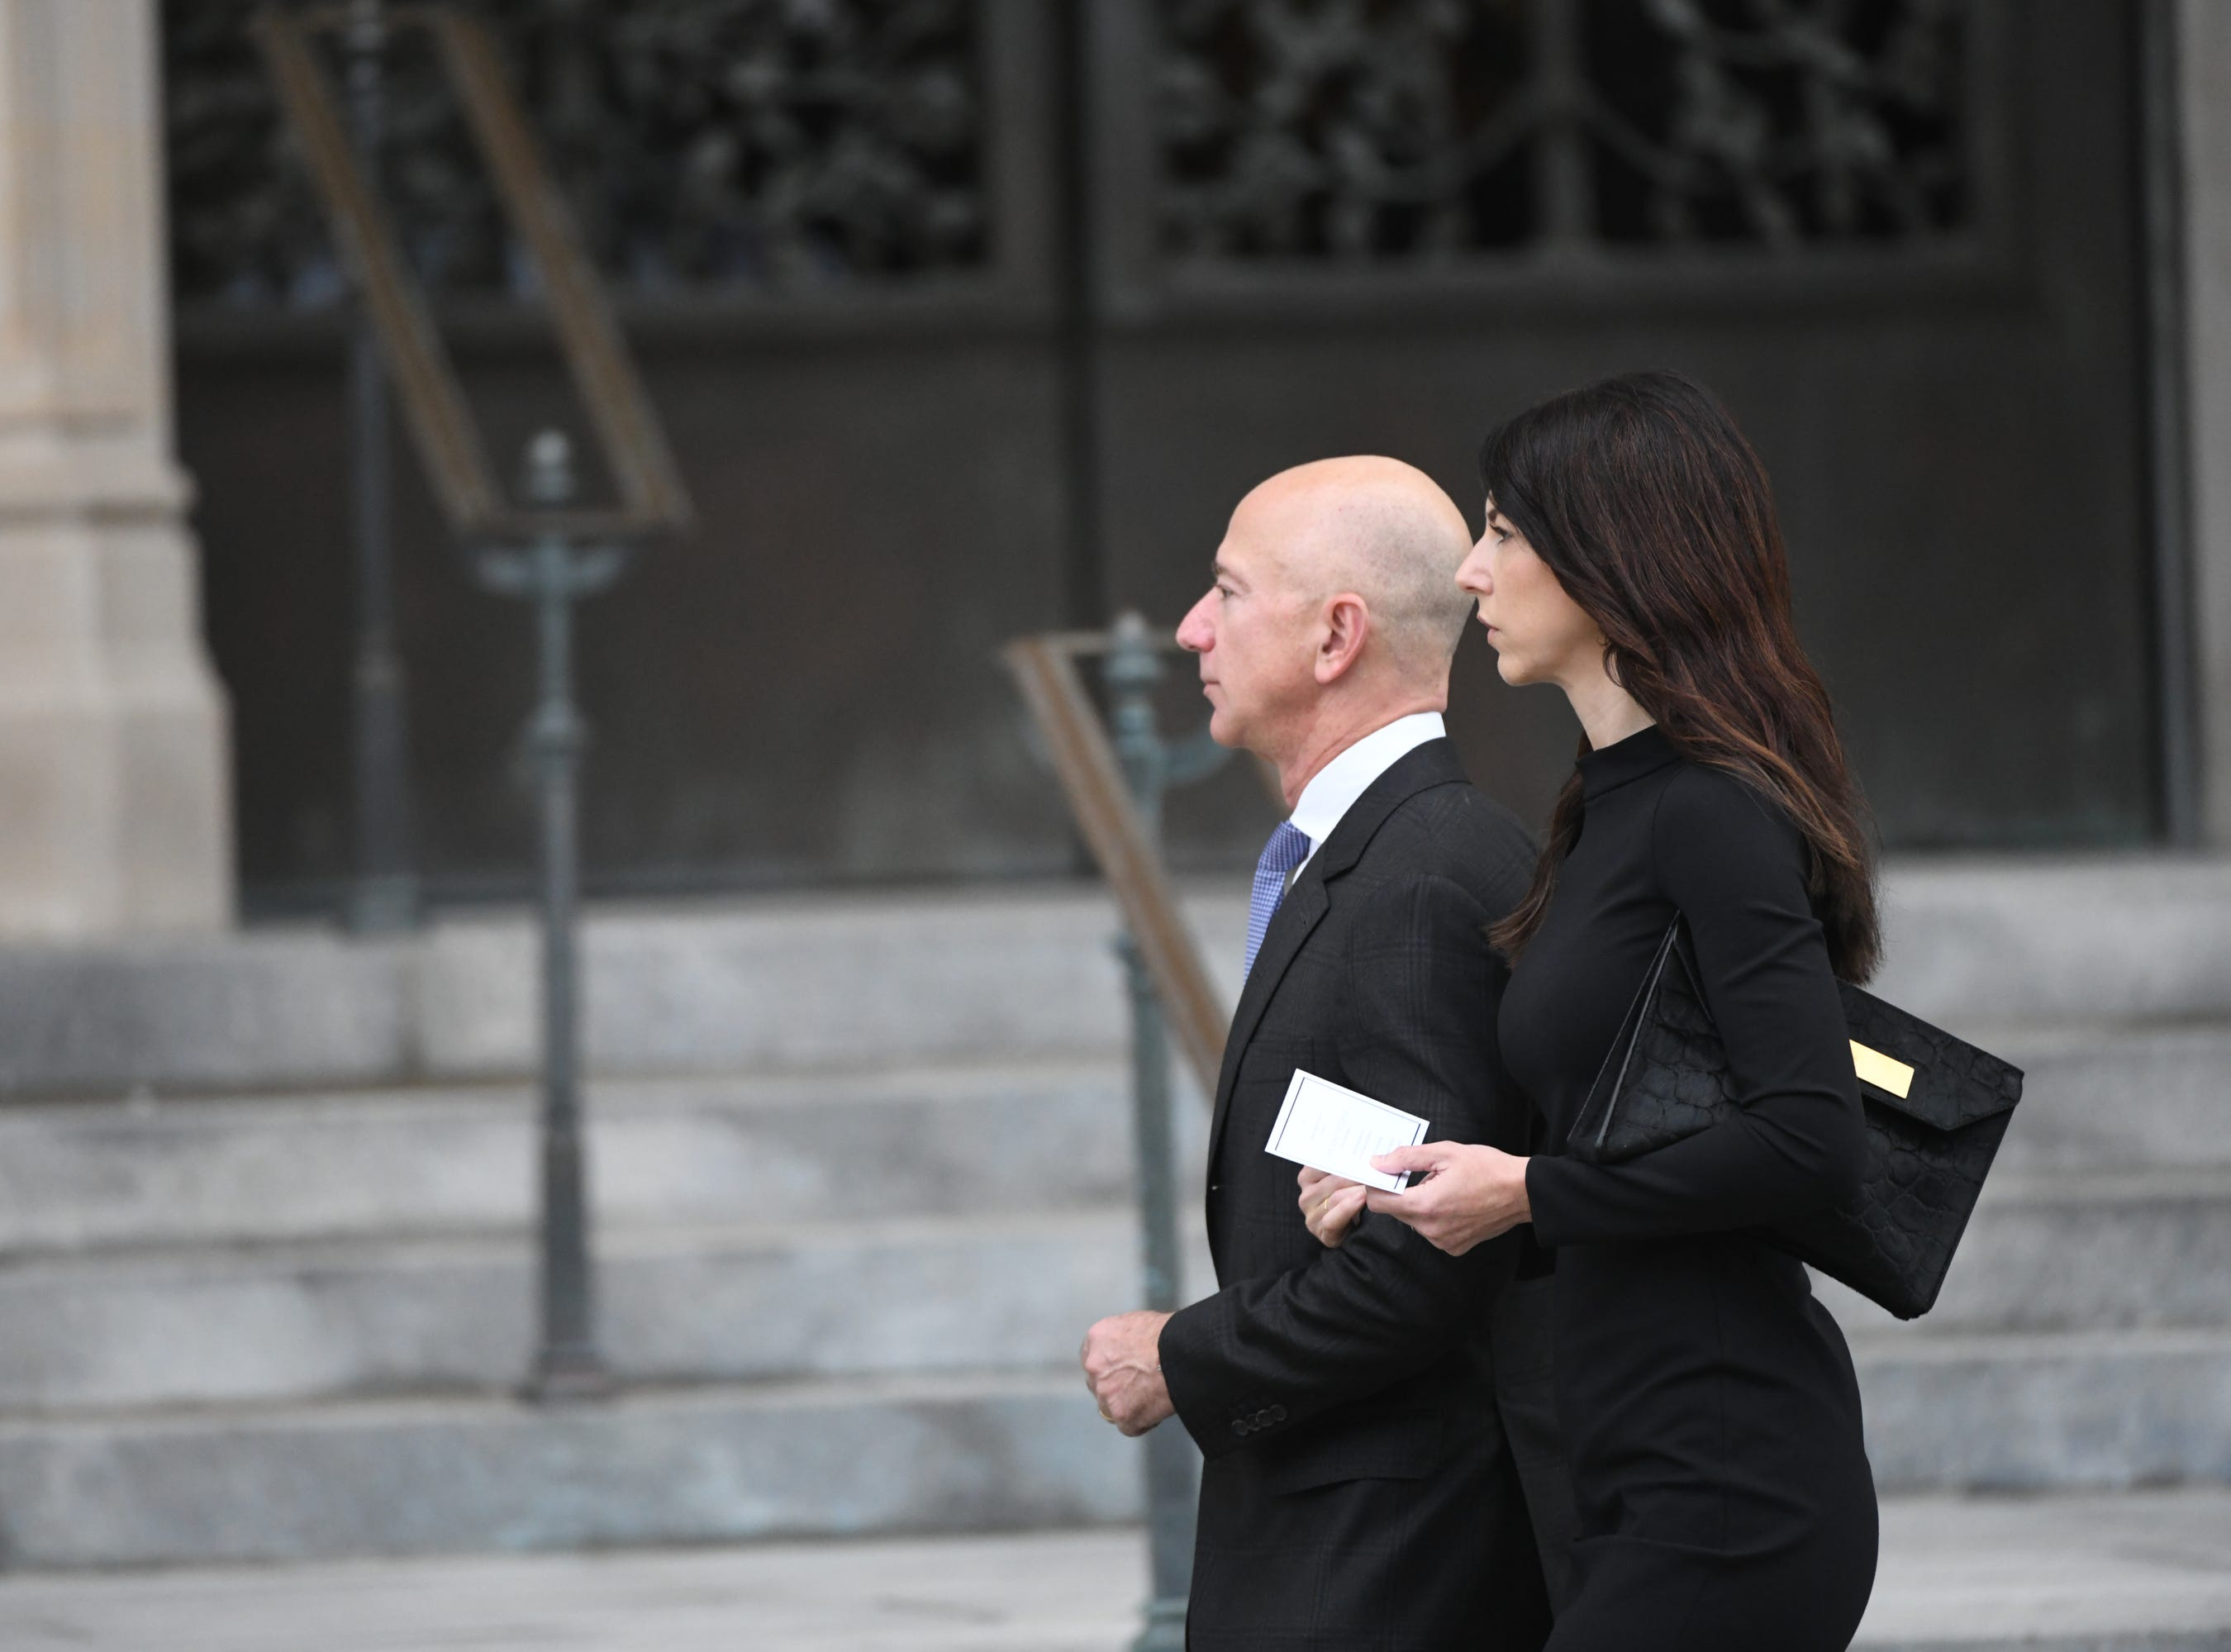 Amazon CEO Jeff Bezos and his wife MacKenzie Bezos approached the National Cathedral in Washington for a memorial service for John McCain.